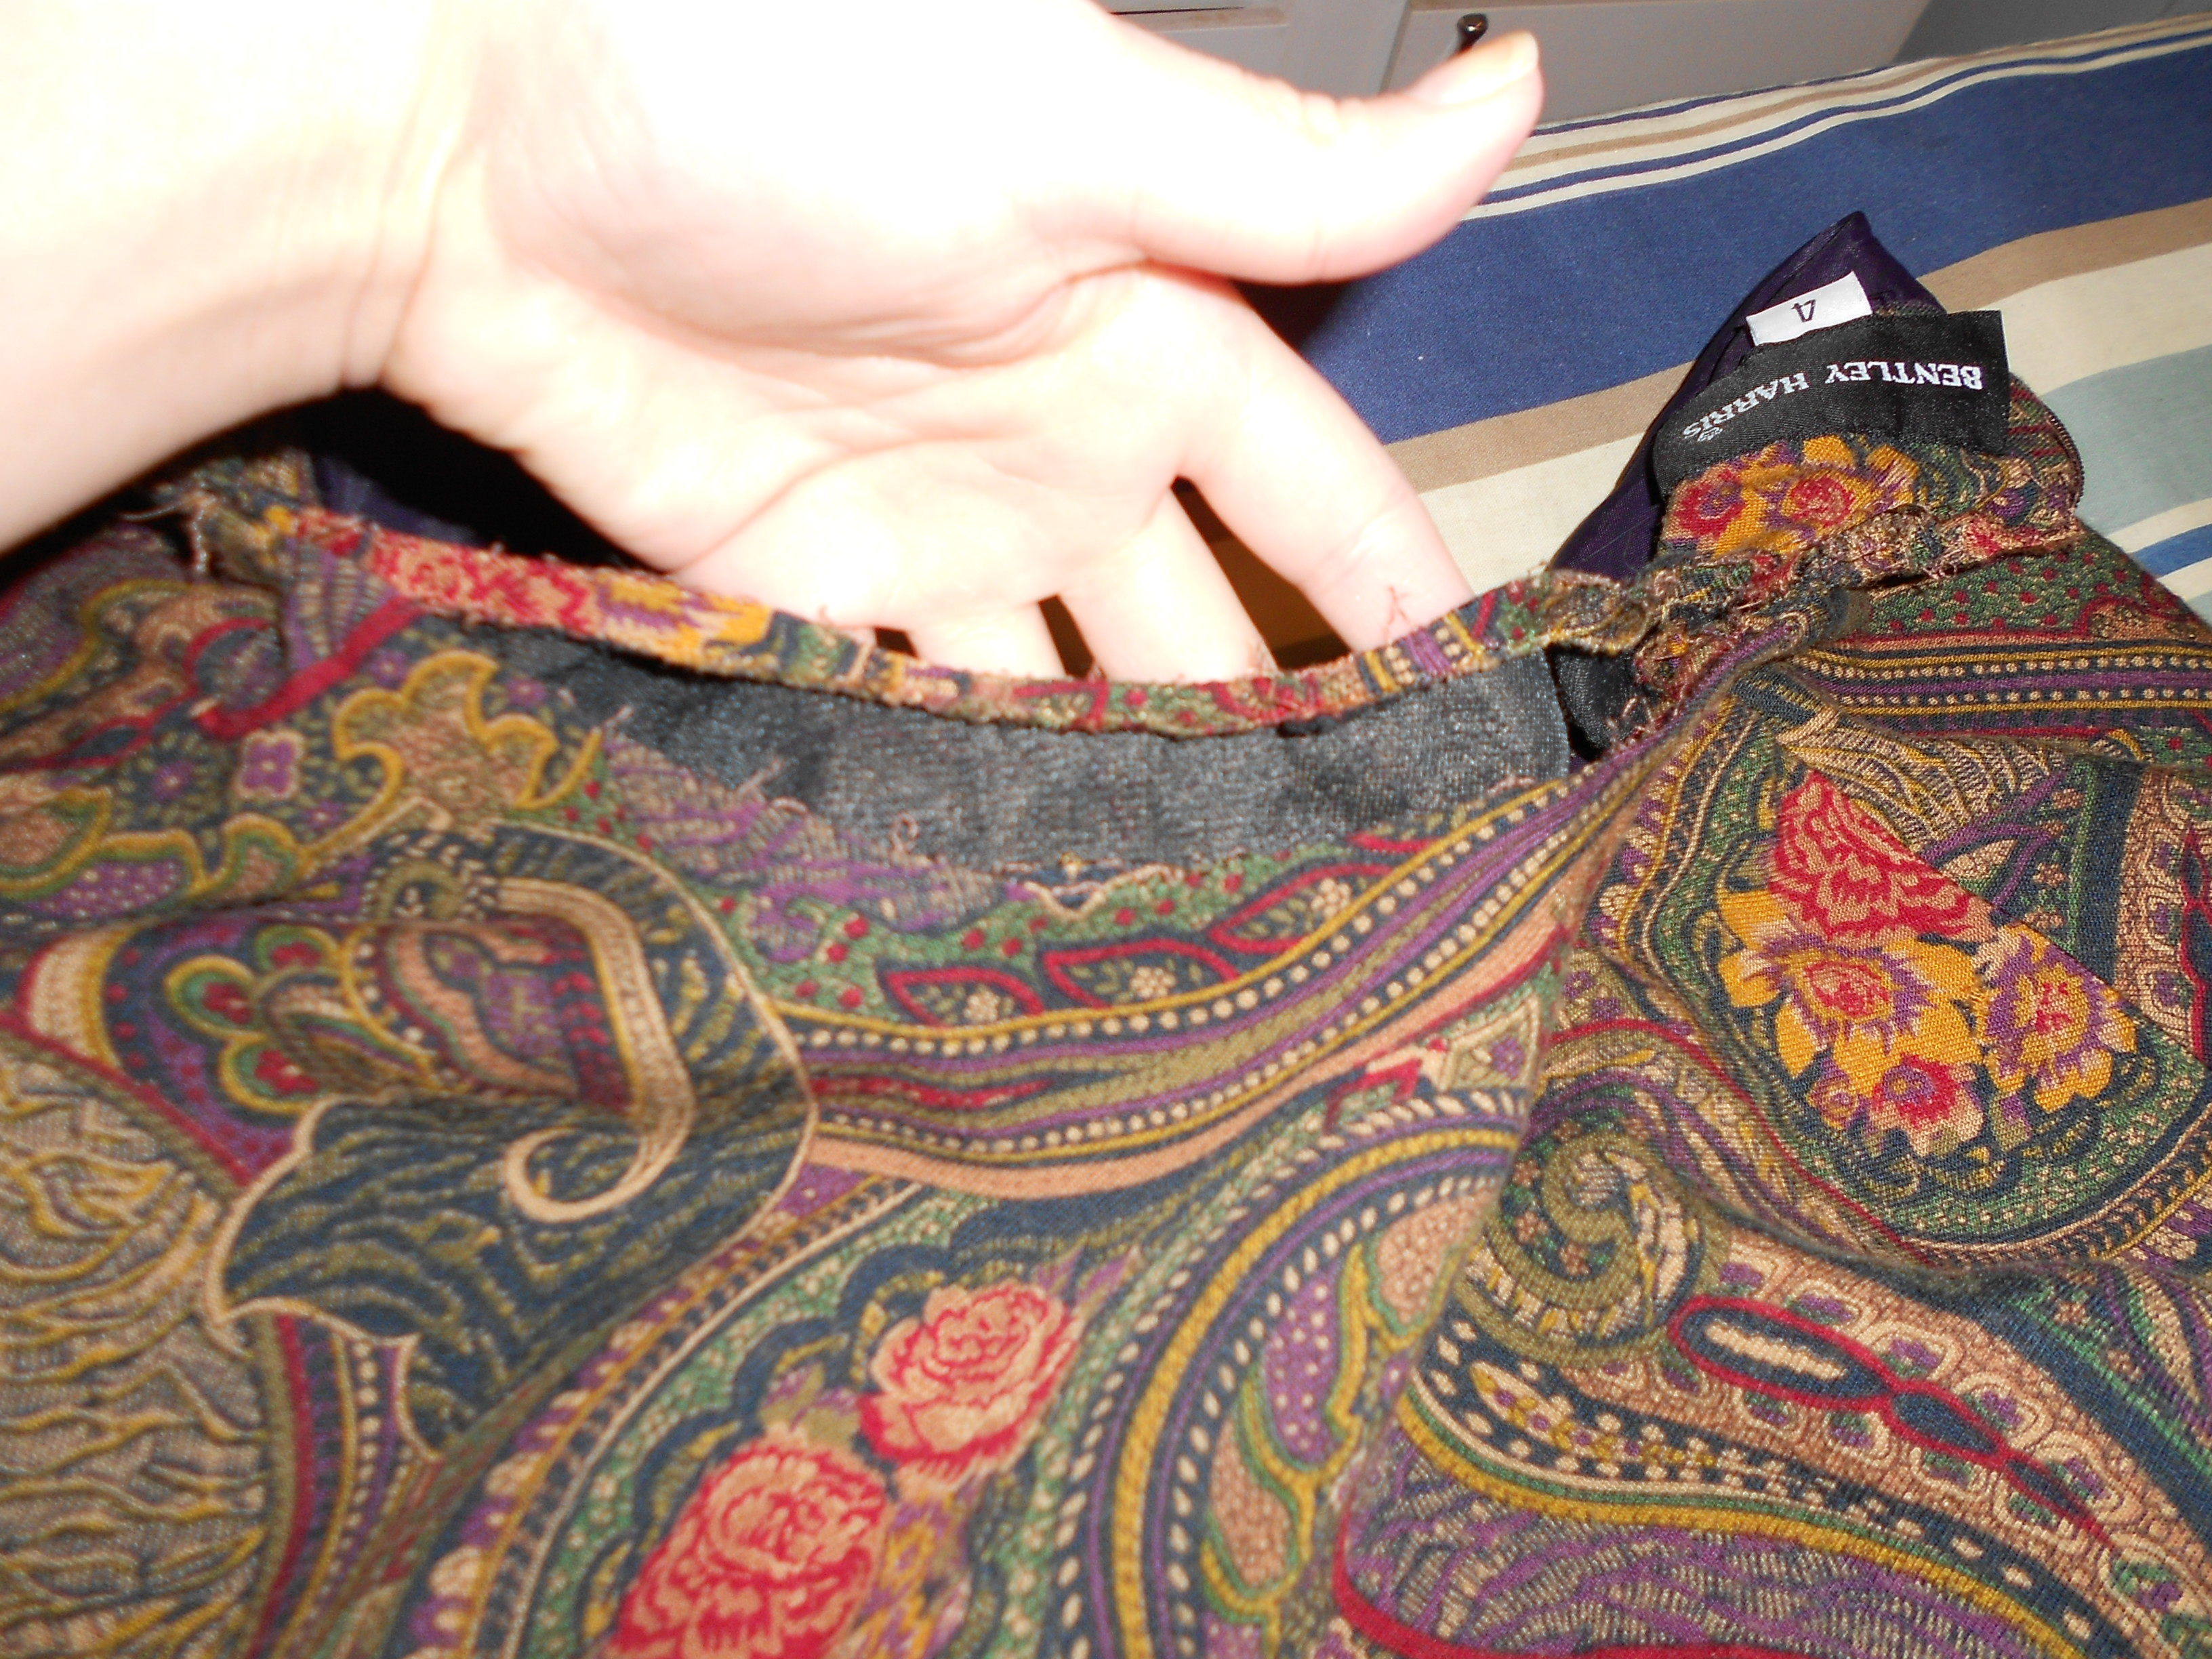 Day 198: Plucky in Paisley Dress 5